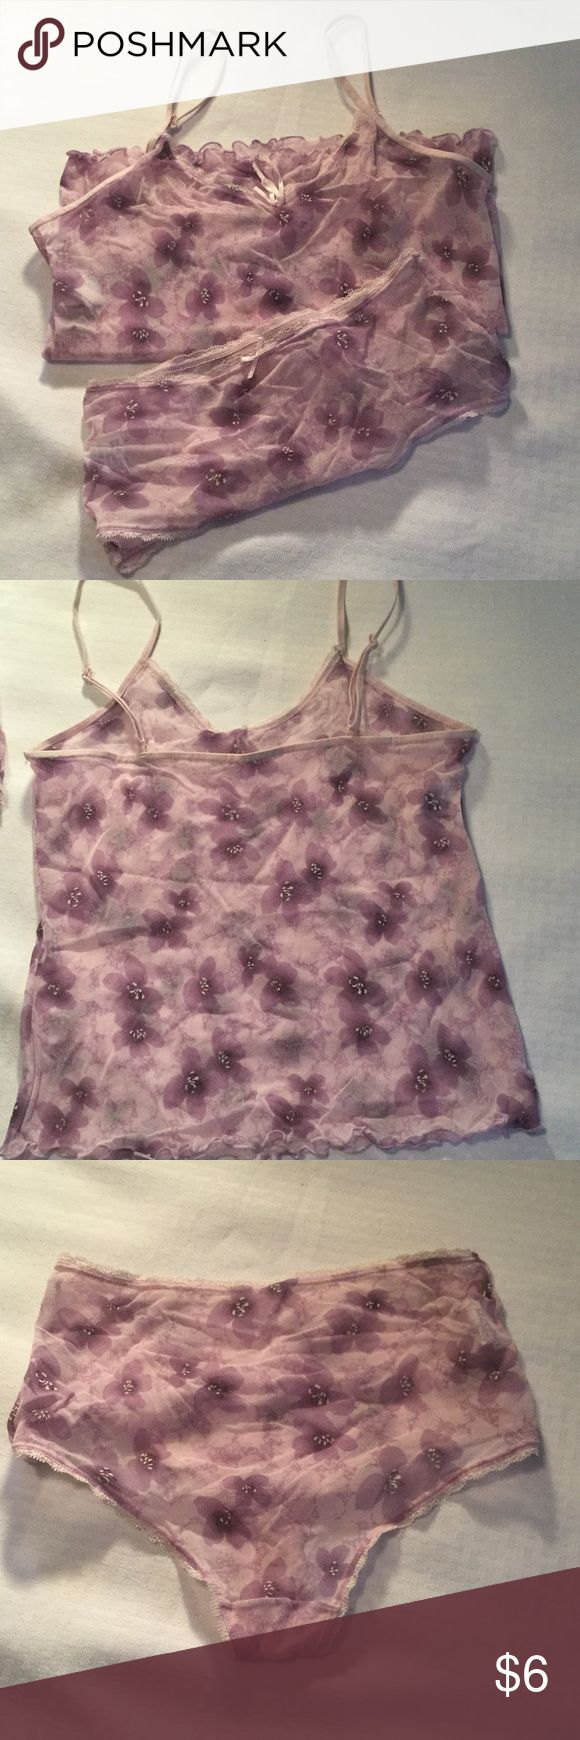 Cute and sexy flowered pj set 2 shades of purple. Mostly see though. Tank has adjustable shoulder straps, no lining. Bottoms have cotton lining like underwear. Bottoms are a large but fit like a medium. Top is medium. Only worn a few times and hand washed. warner Intimates & Sleepwear Pajamas